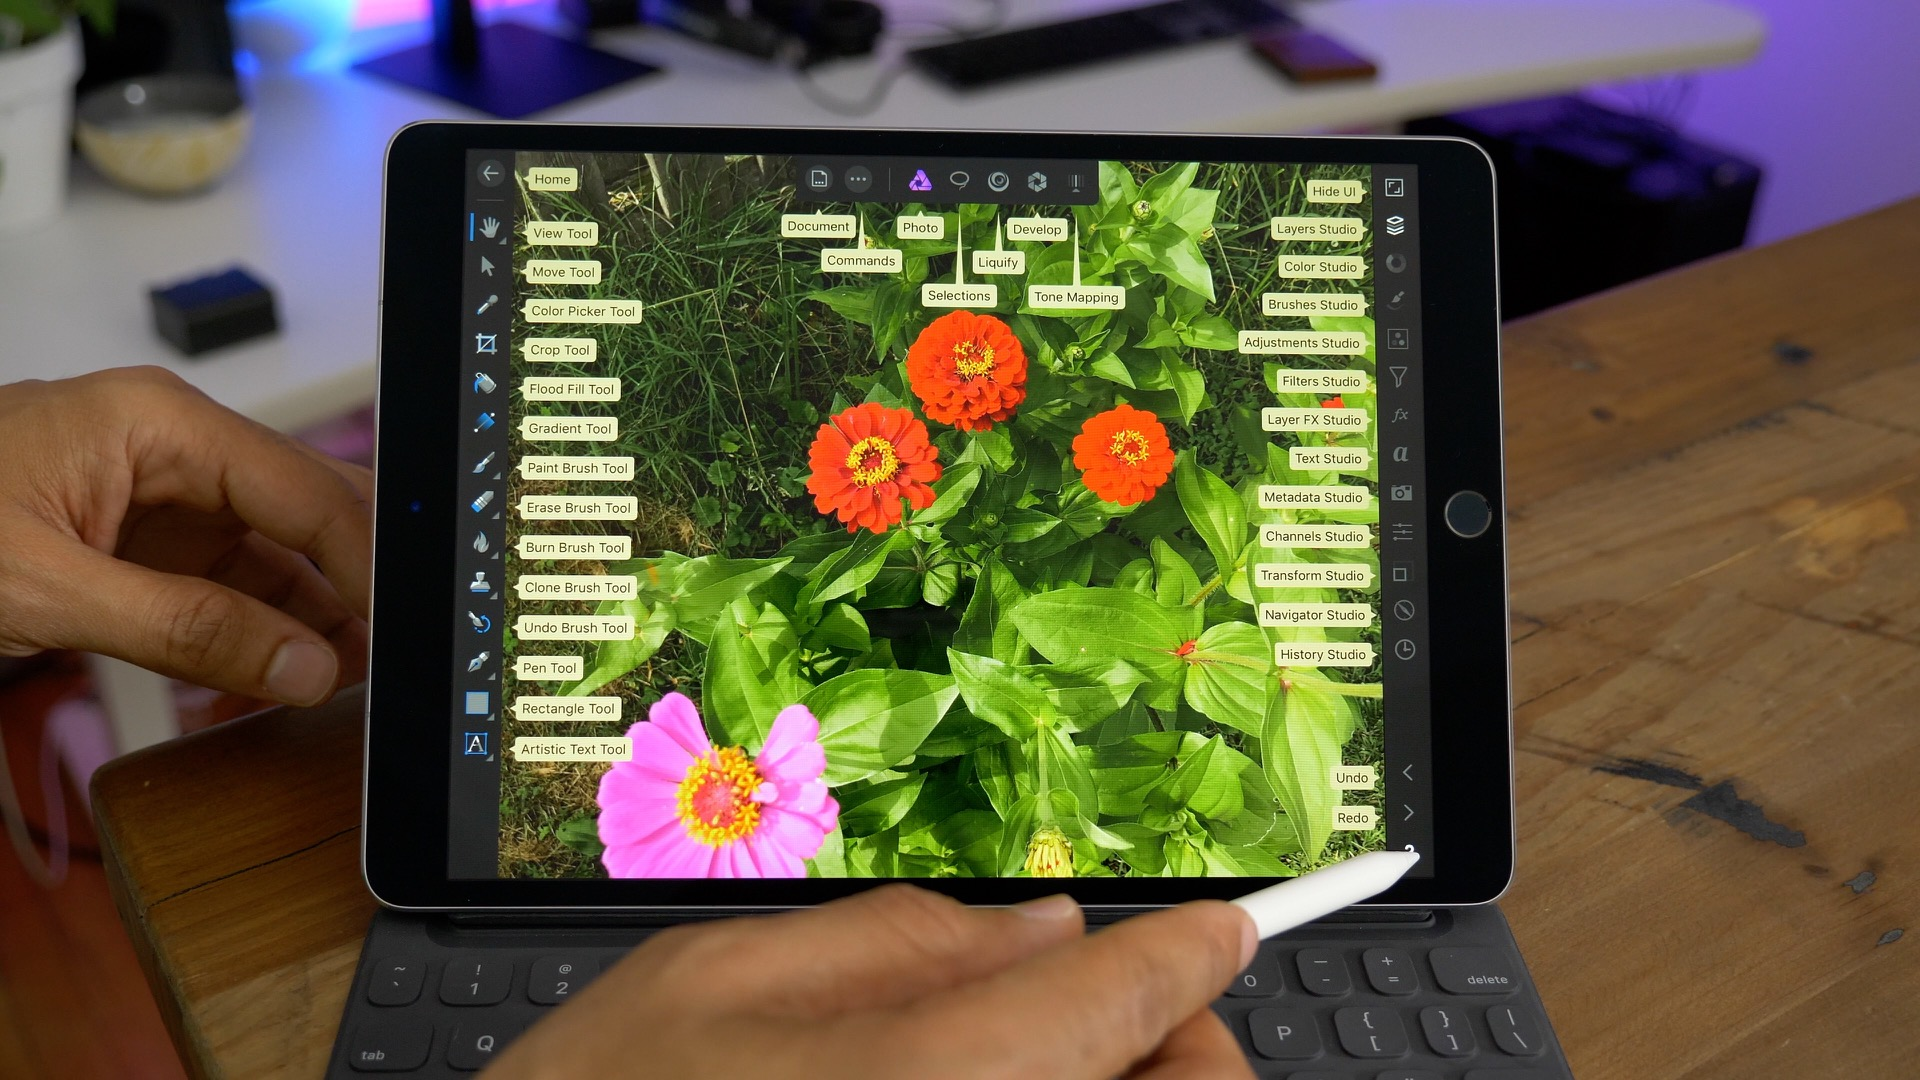 Friday 5: Affinity Photo - a must-have photo editing app for iPad